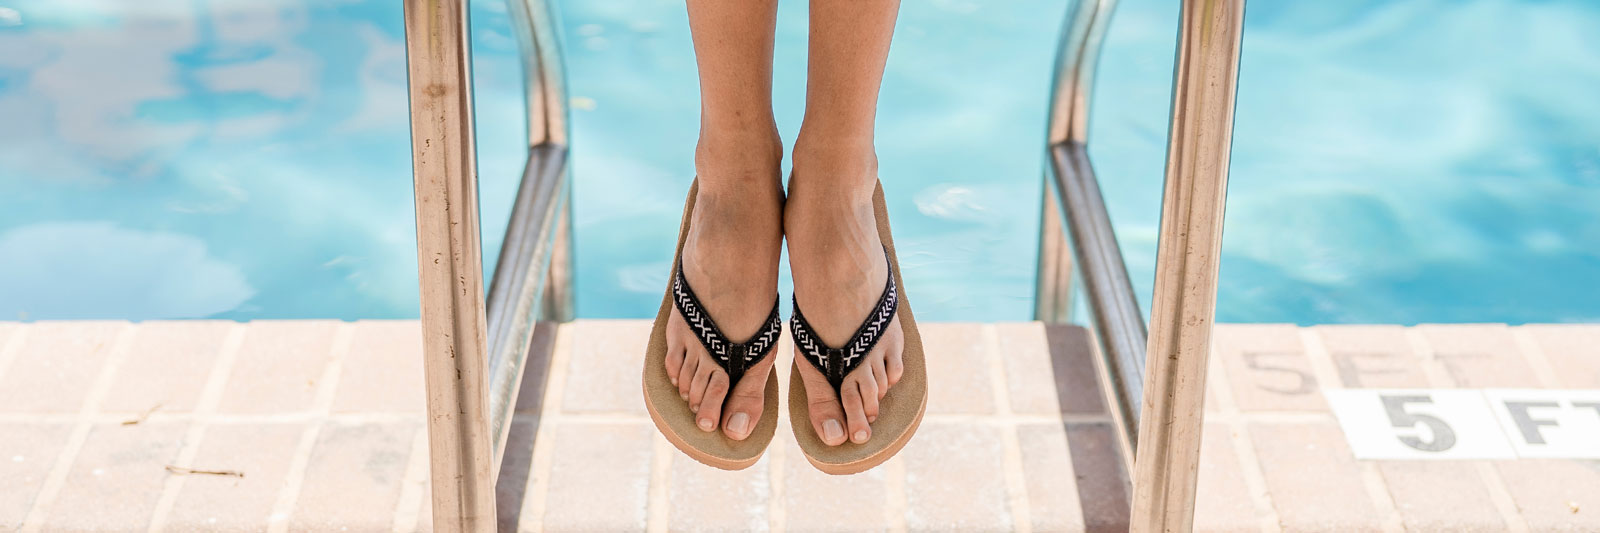 Close up of a woman's feet wearing Sanuk Sandals with a pool in the background.